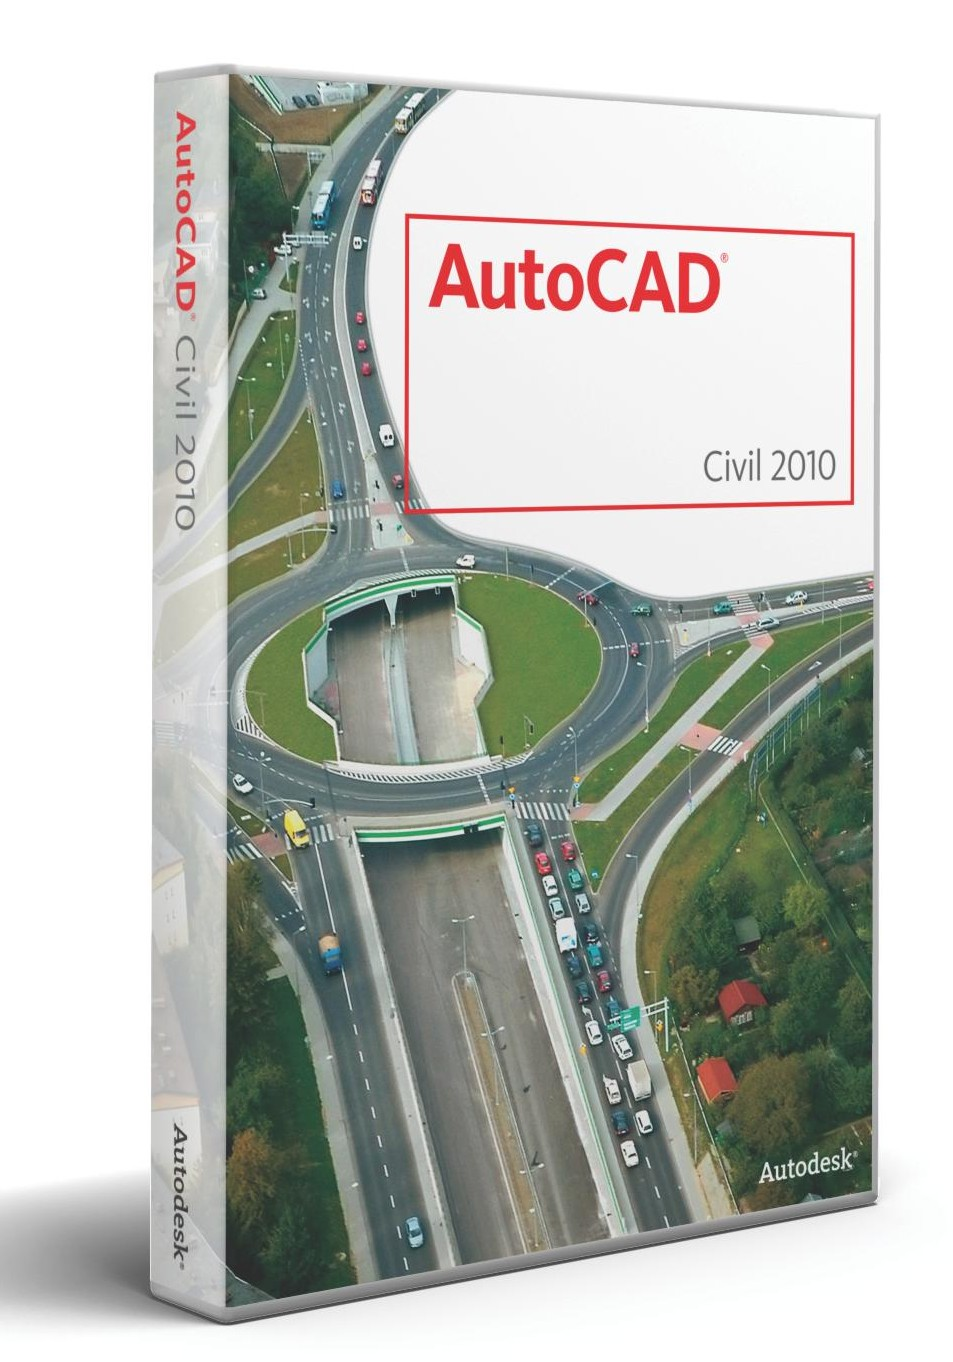 Autocad 2010 download 32/64bit-new link!!! Youtube.